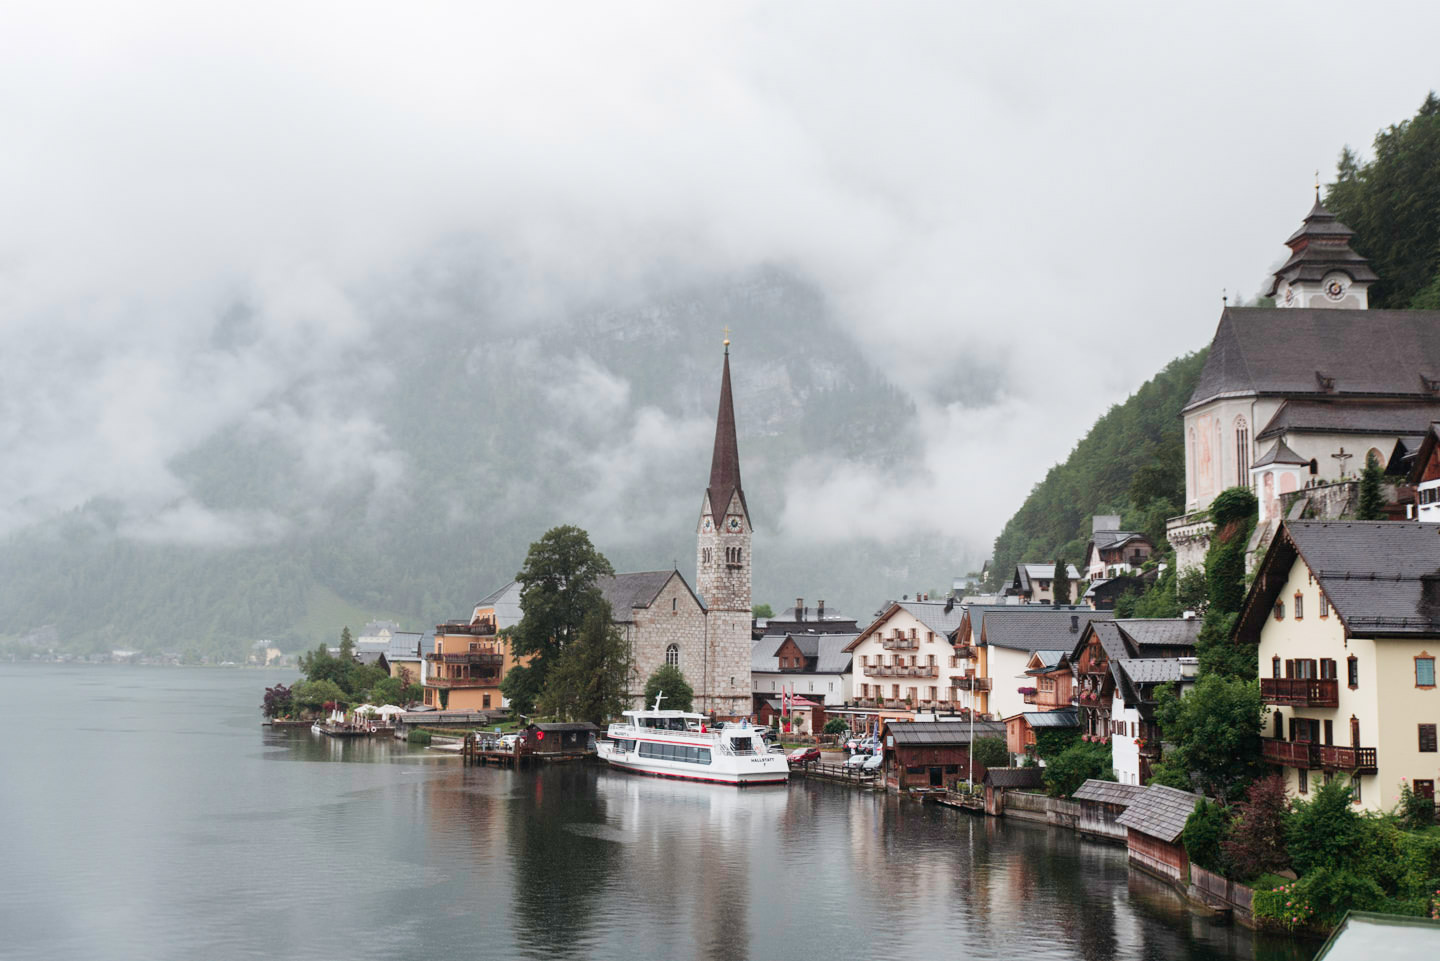 Blog-Mode-And-The-City-Lifestyle-Roadtrip-Allemagne-Autriche18